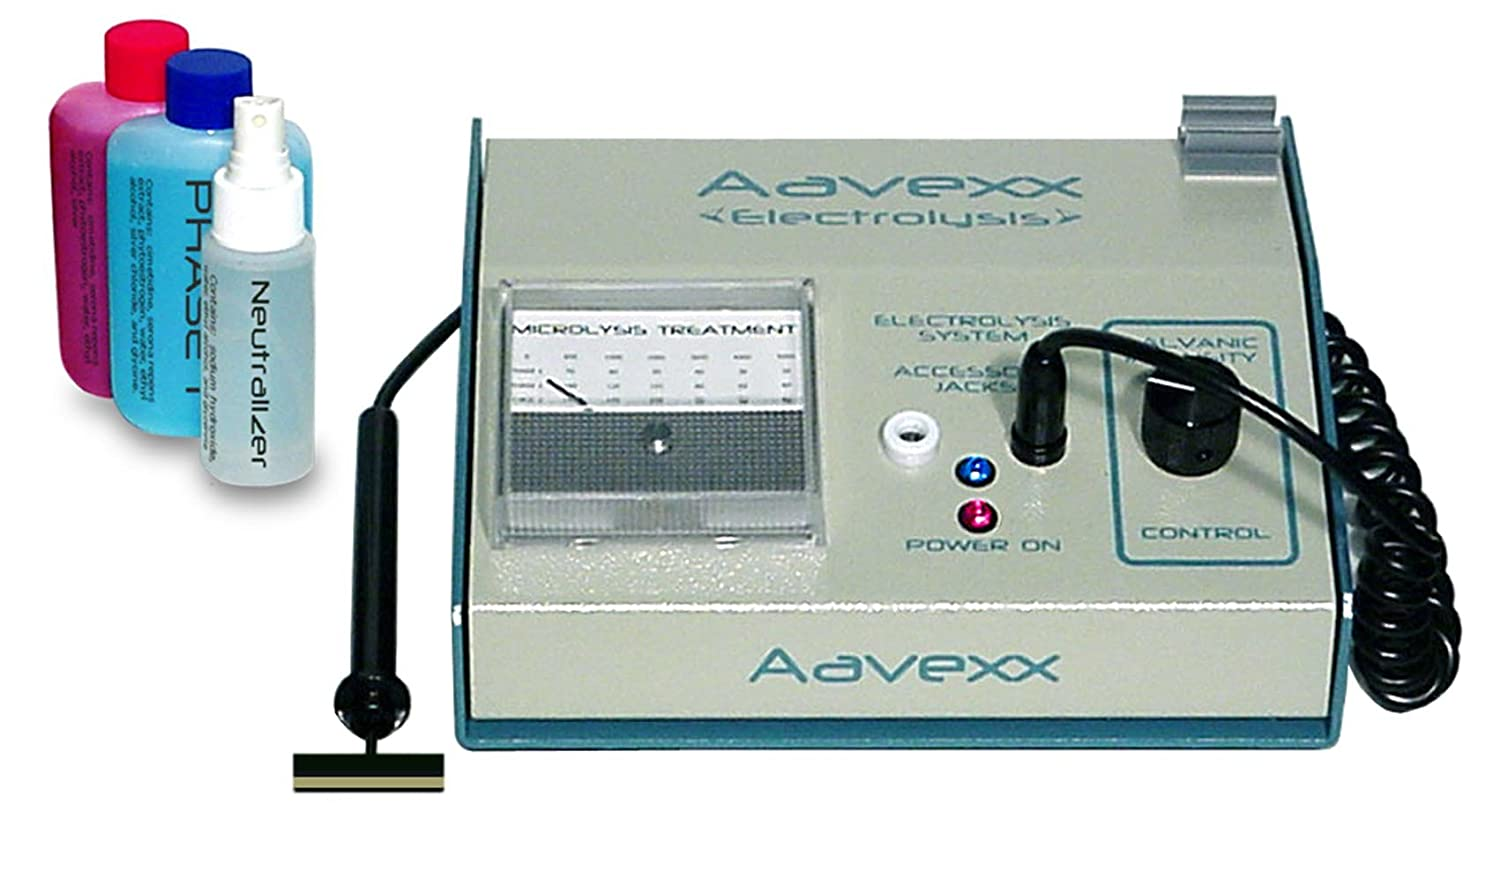 Aavexx 300 Microlysis Cost Effective Home-Use-System, Non Invasive Hair Removal!